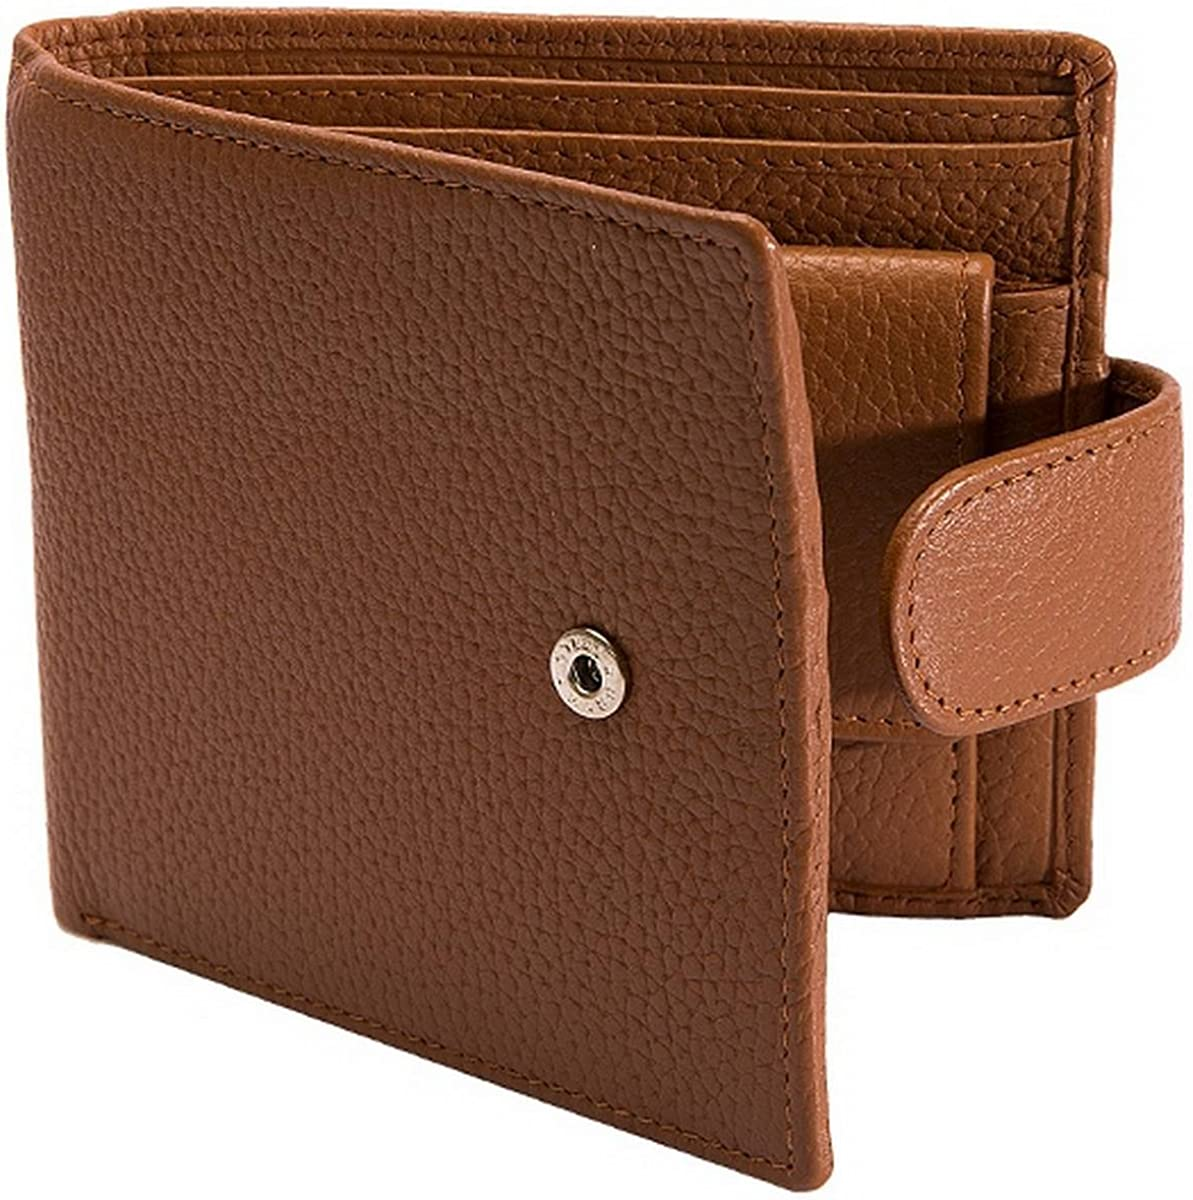 B075KBZSYH Dents Mens Pebble Grain RFID Stud Bifold Wallet - Cognac 71ol0xxcd3L